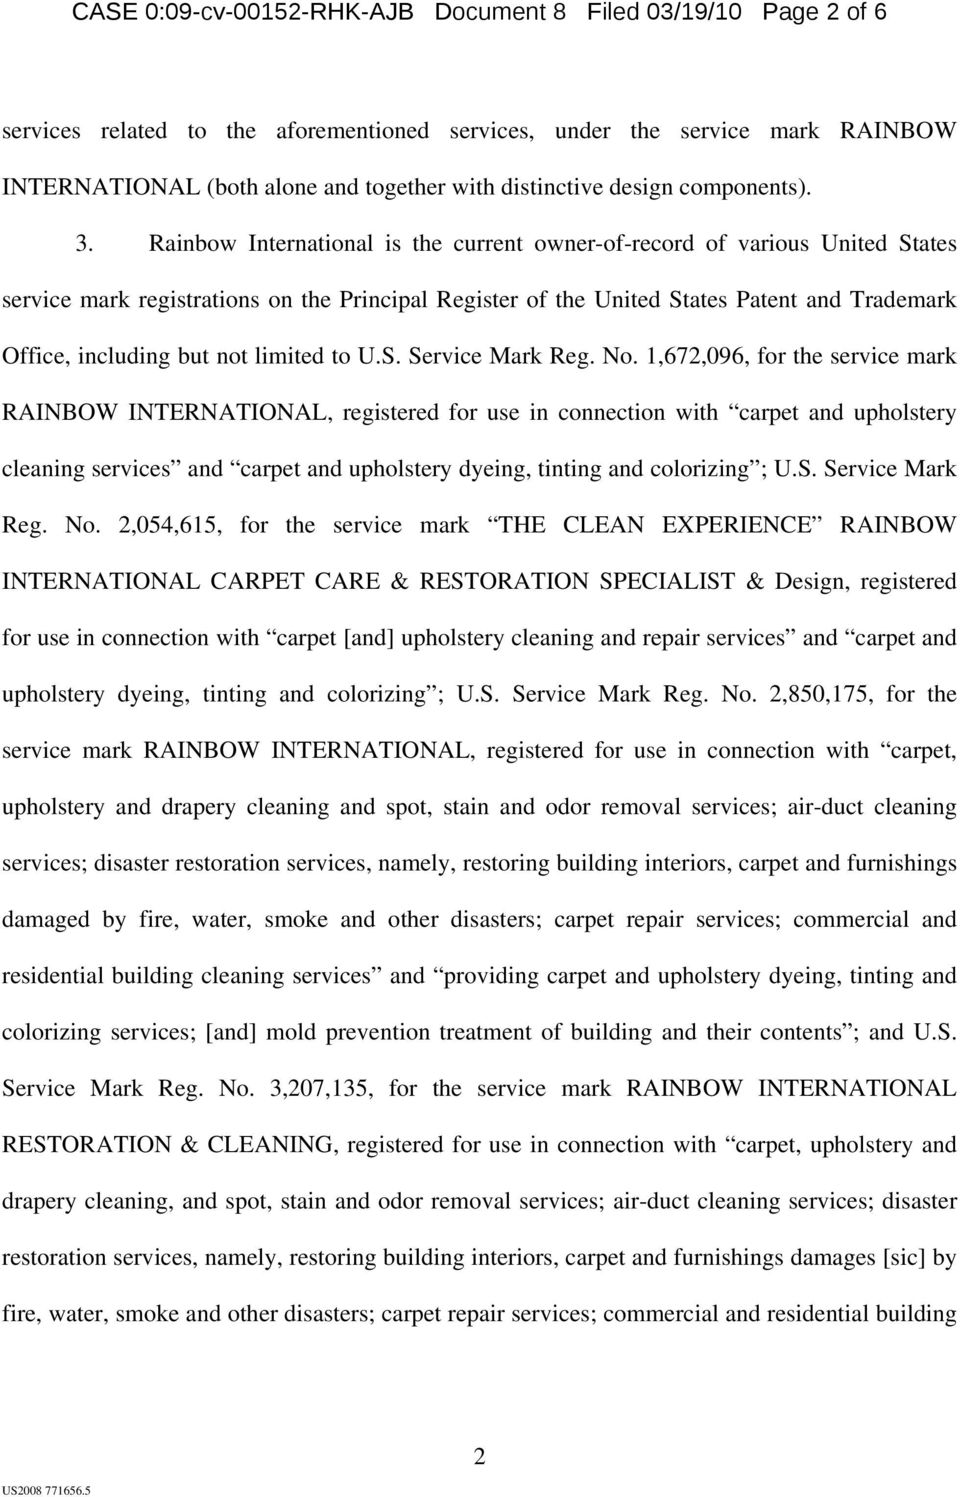 Rainbow International is the current owner-of-record of various United States service mark registrations on the Principal Register of the United States Patent and Trademark Office, including but not